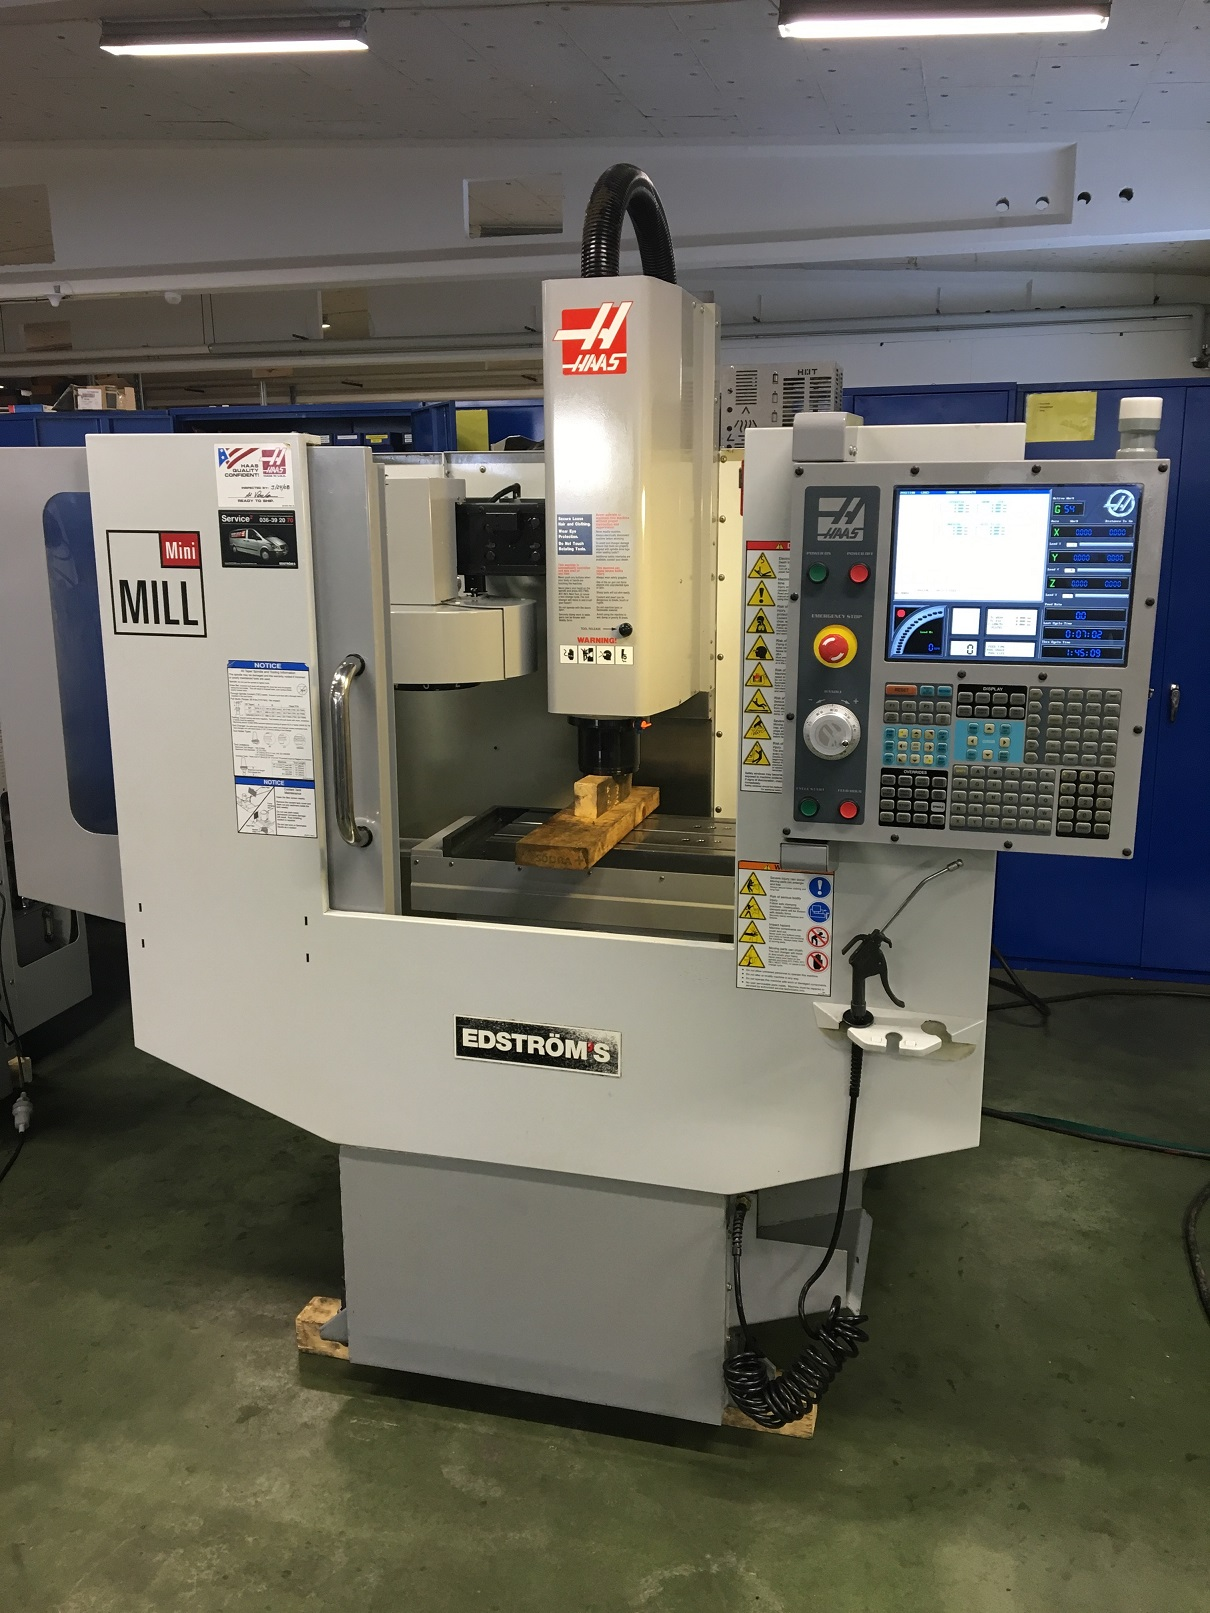 Haas Mini Mill Cnc Vertical Milling Machine Exapro